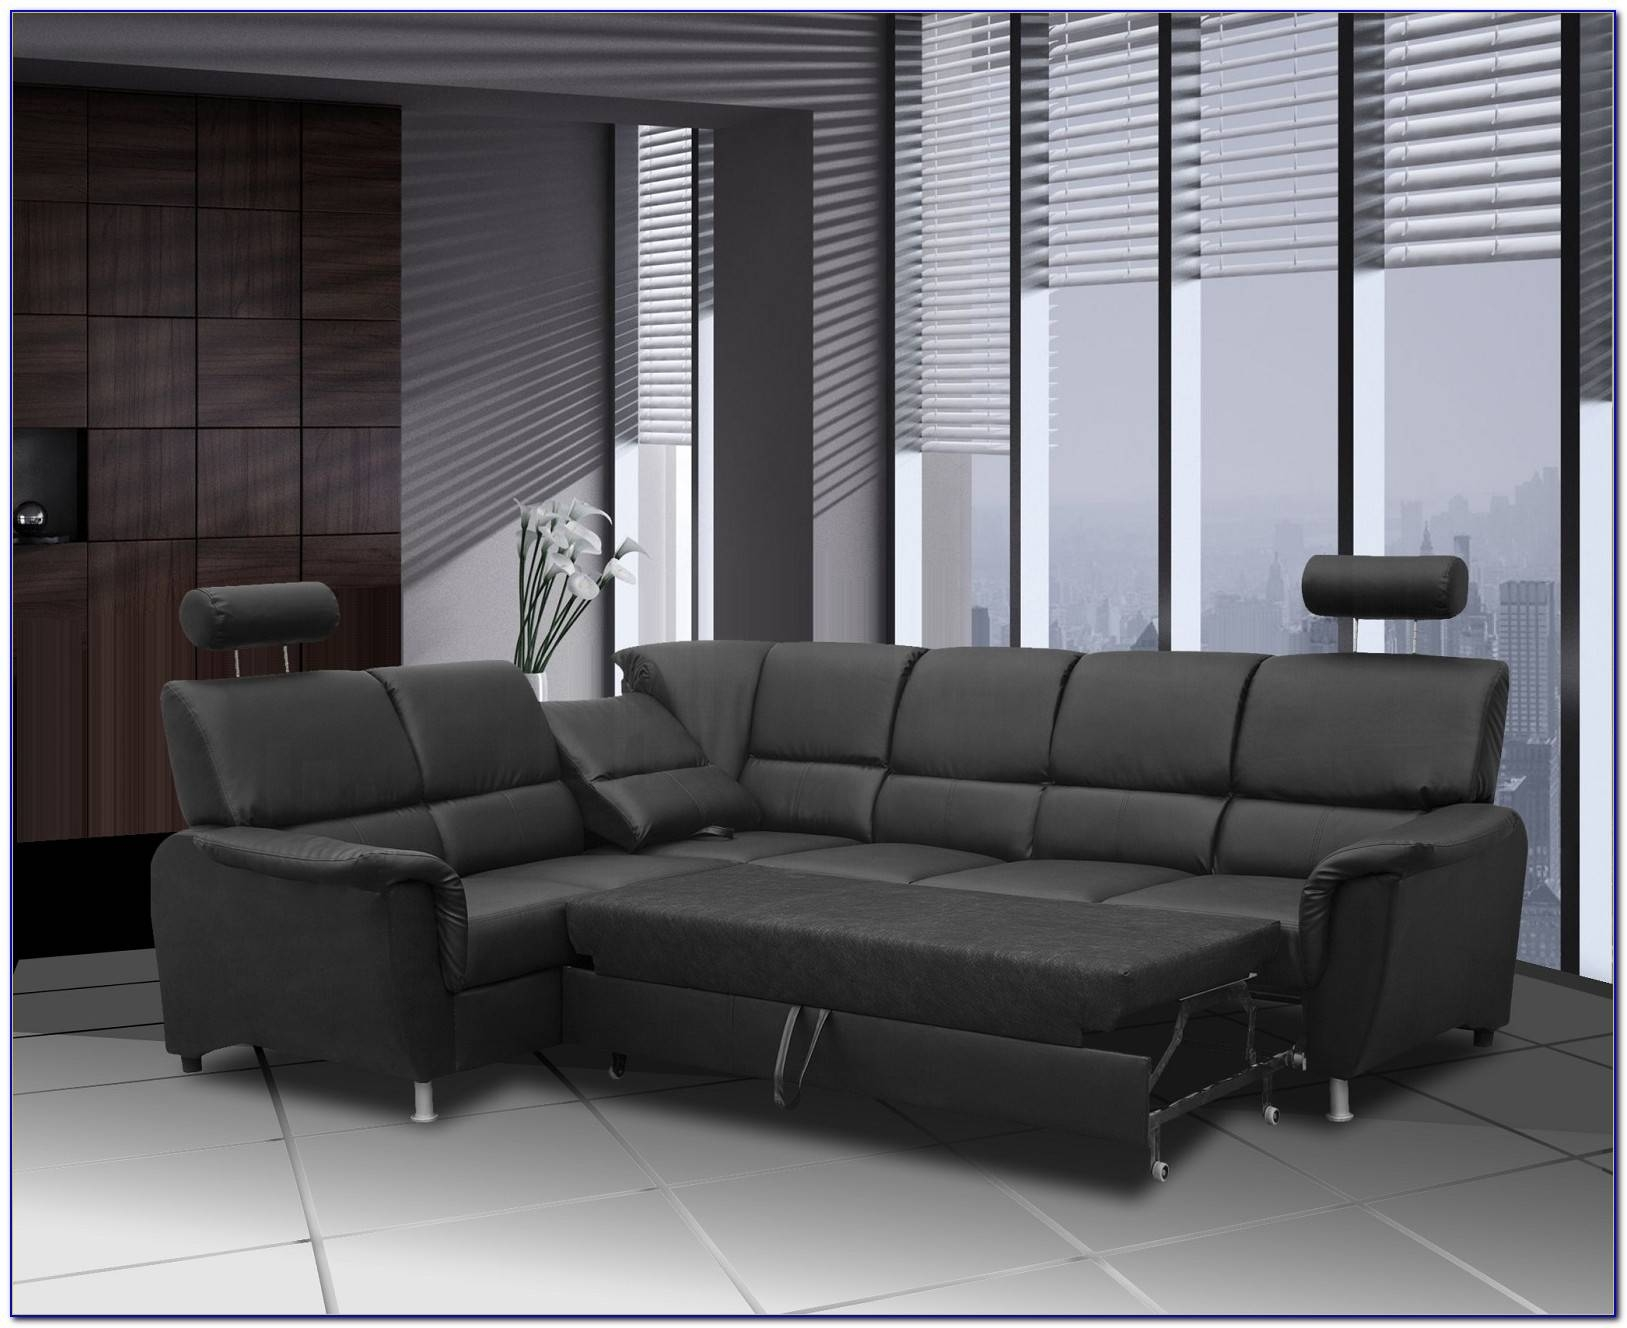 Leather Sectional Sofas San Diego – Cleanupflorida Intended For Sectional Sofa San Diego (View 14 of 30)